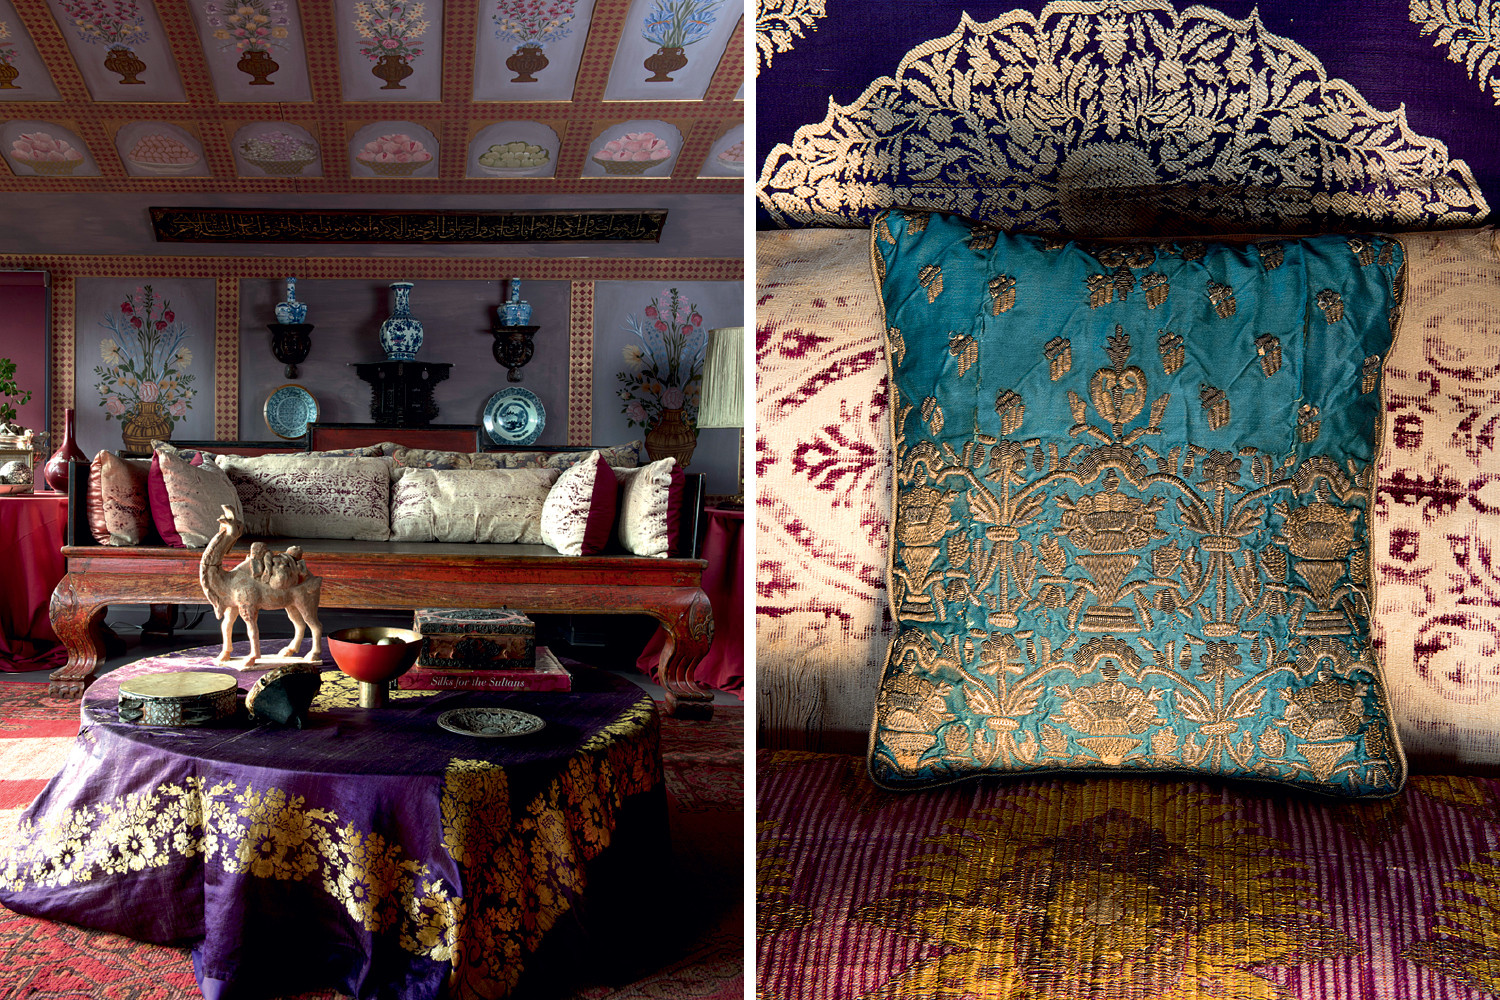 Delve into this richly elaborate style in the forthcoming book Ottoman Chic (Assouline).